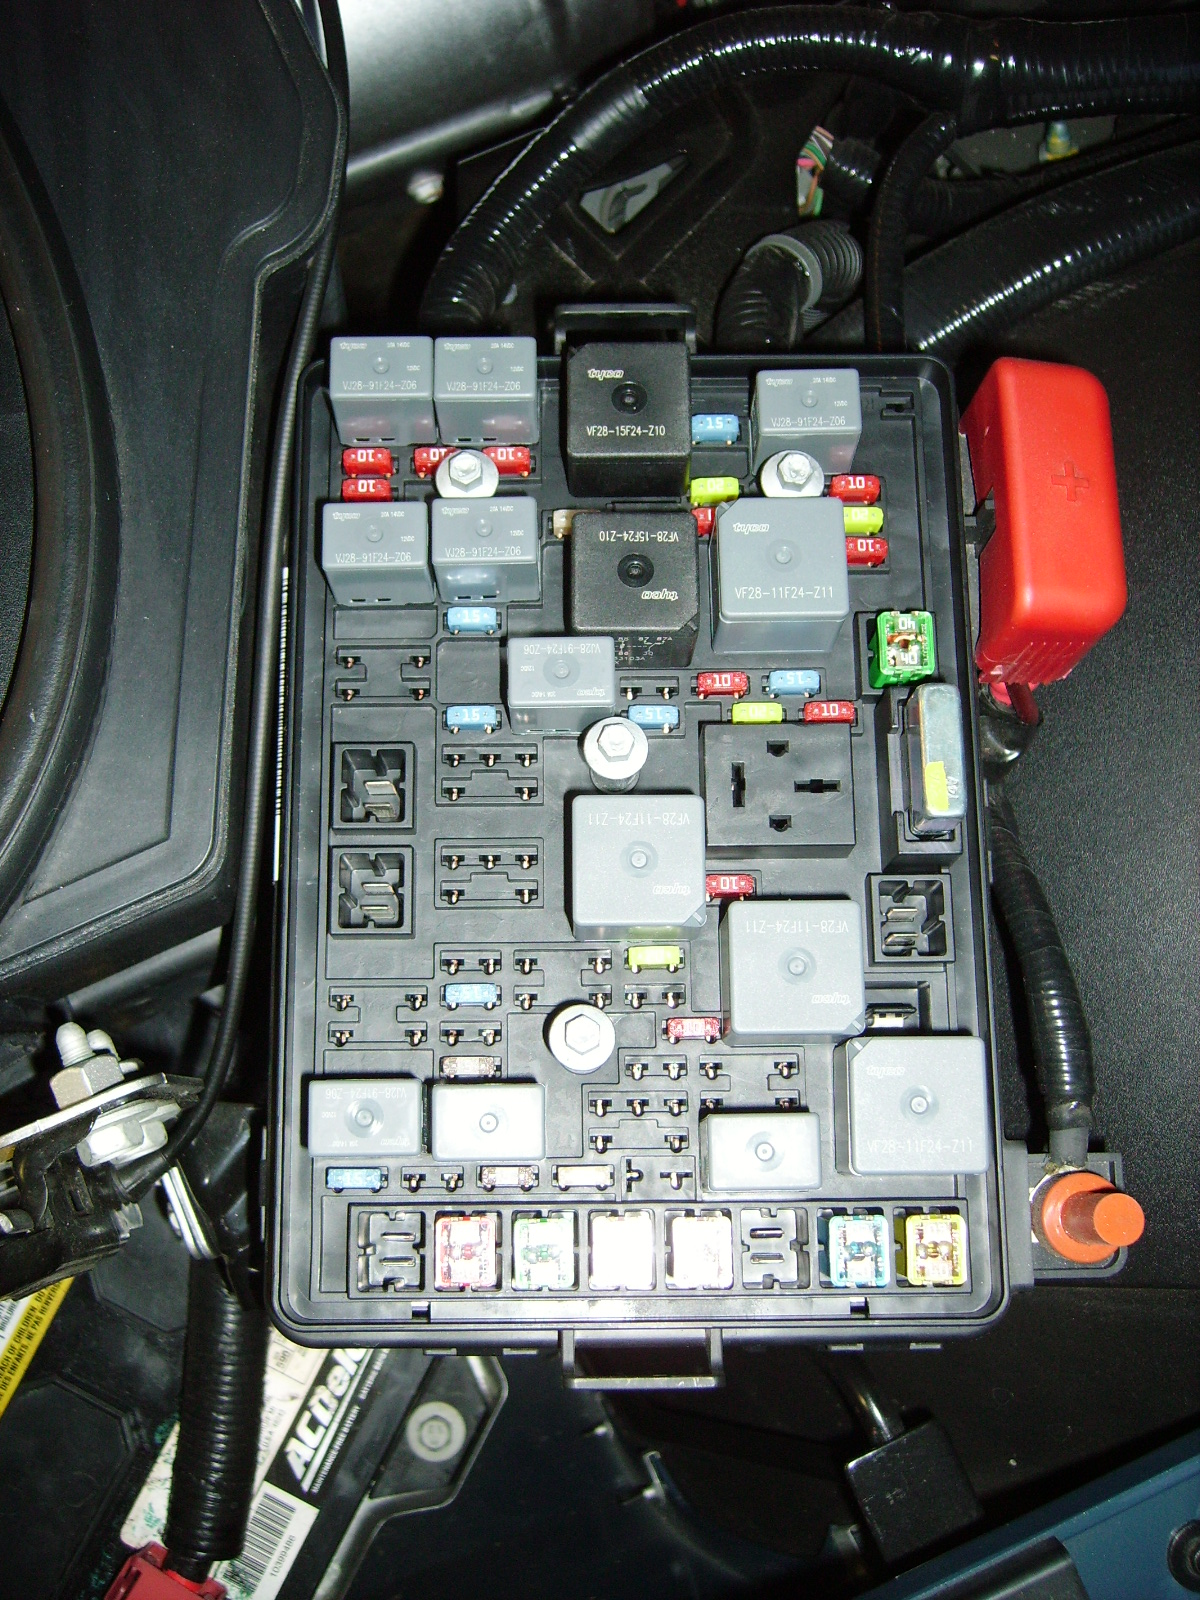 2008 Jeep Patriot Fuse Box Location Diy Enthusiasts Wiring Diagrams